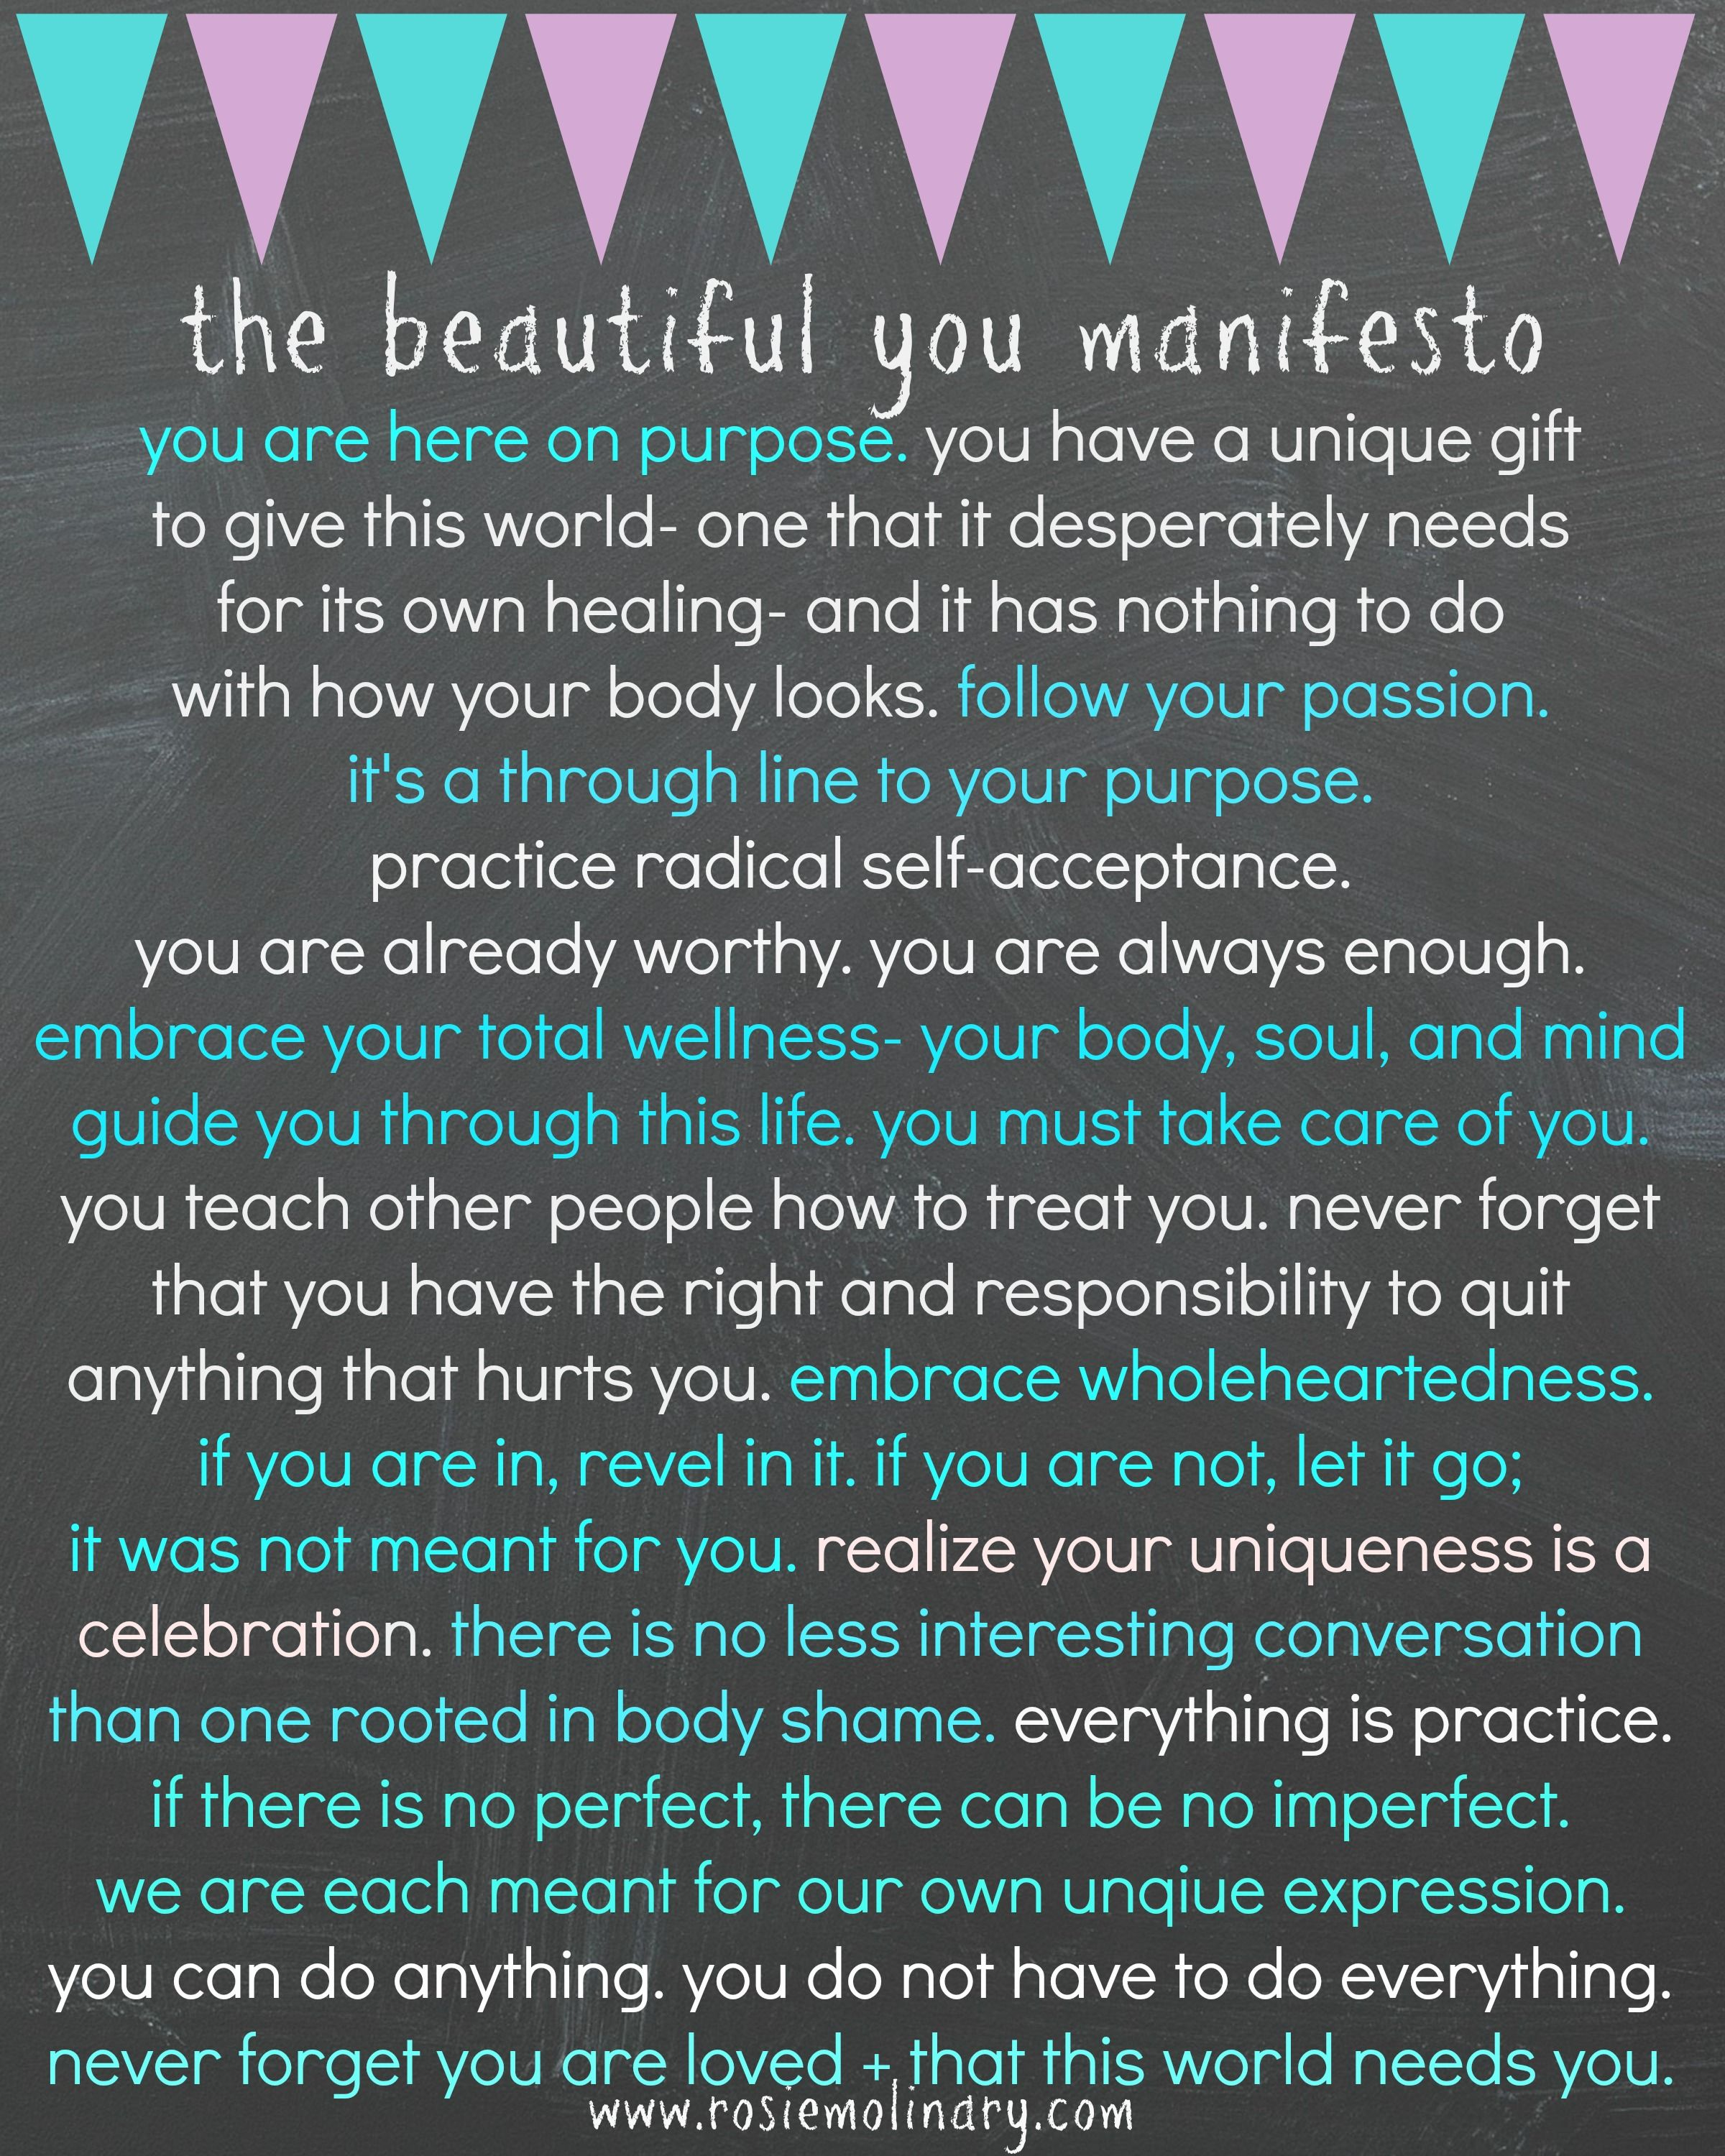 Finals Quotes Gorgeous Beautiful You Manifesto Final  True Wisdom  Pinterest  Finals . Decorating Design